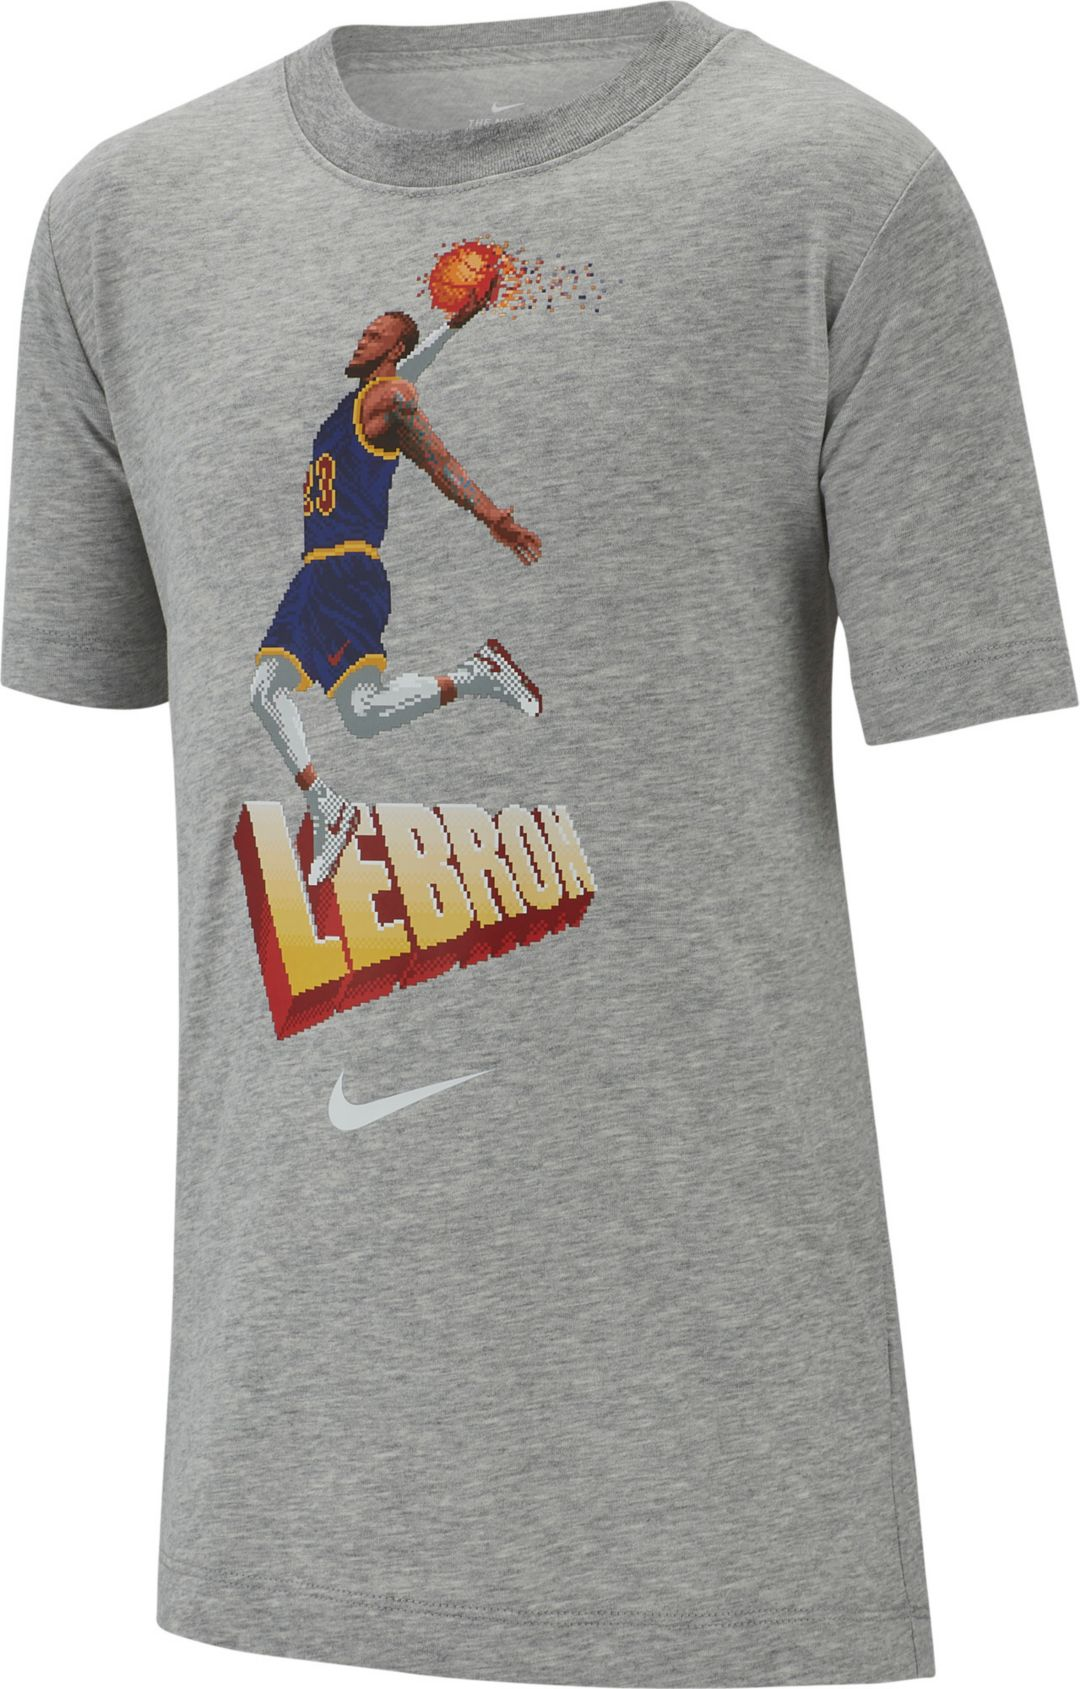 quality design 9a4f1 76c9c Nike Boys  LeBron Video Game Graphic Tee 1